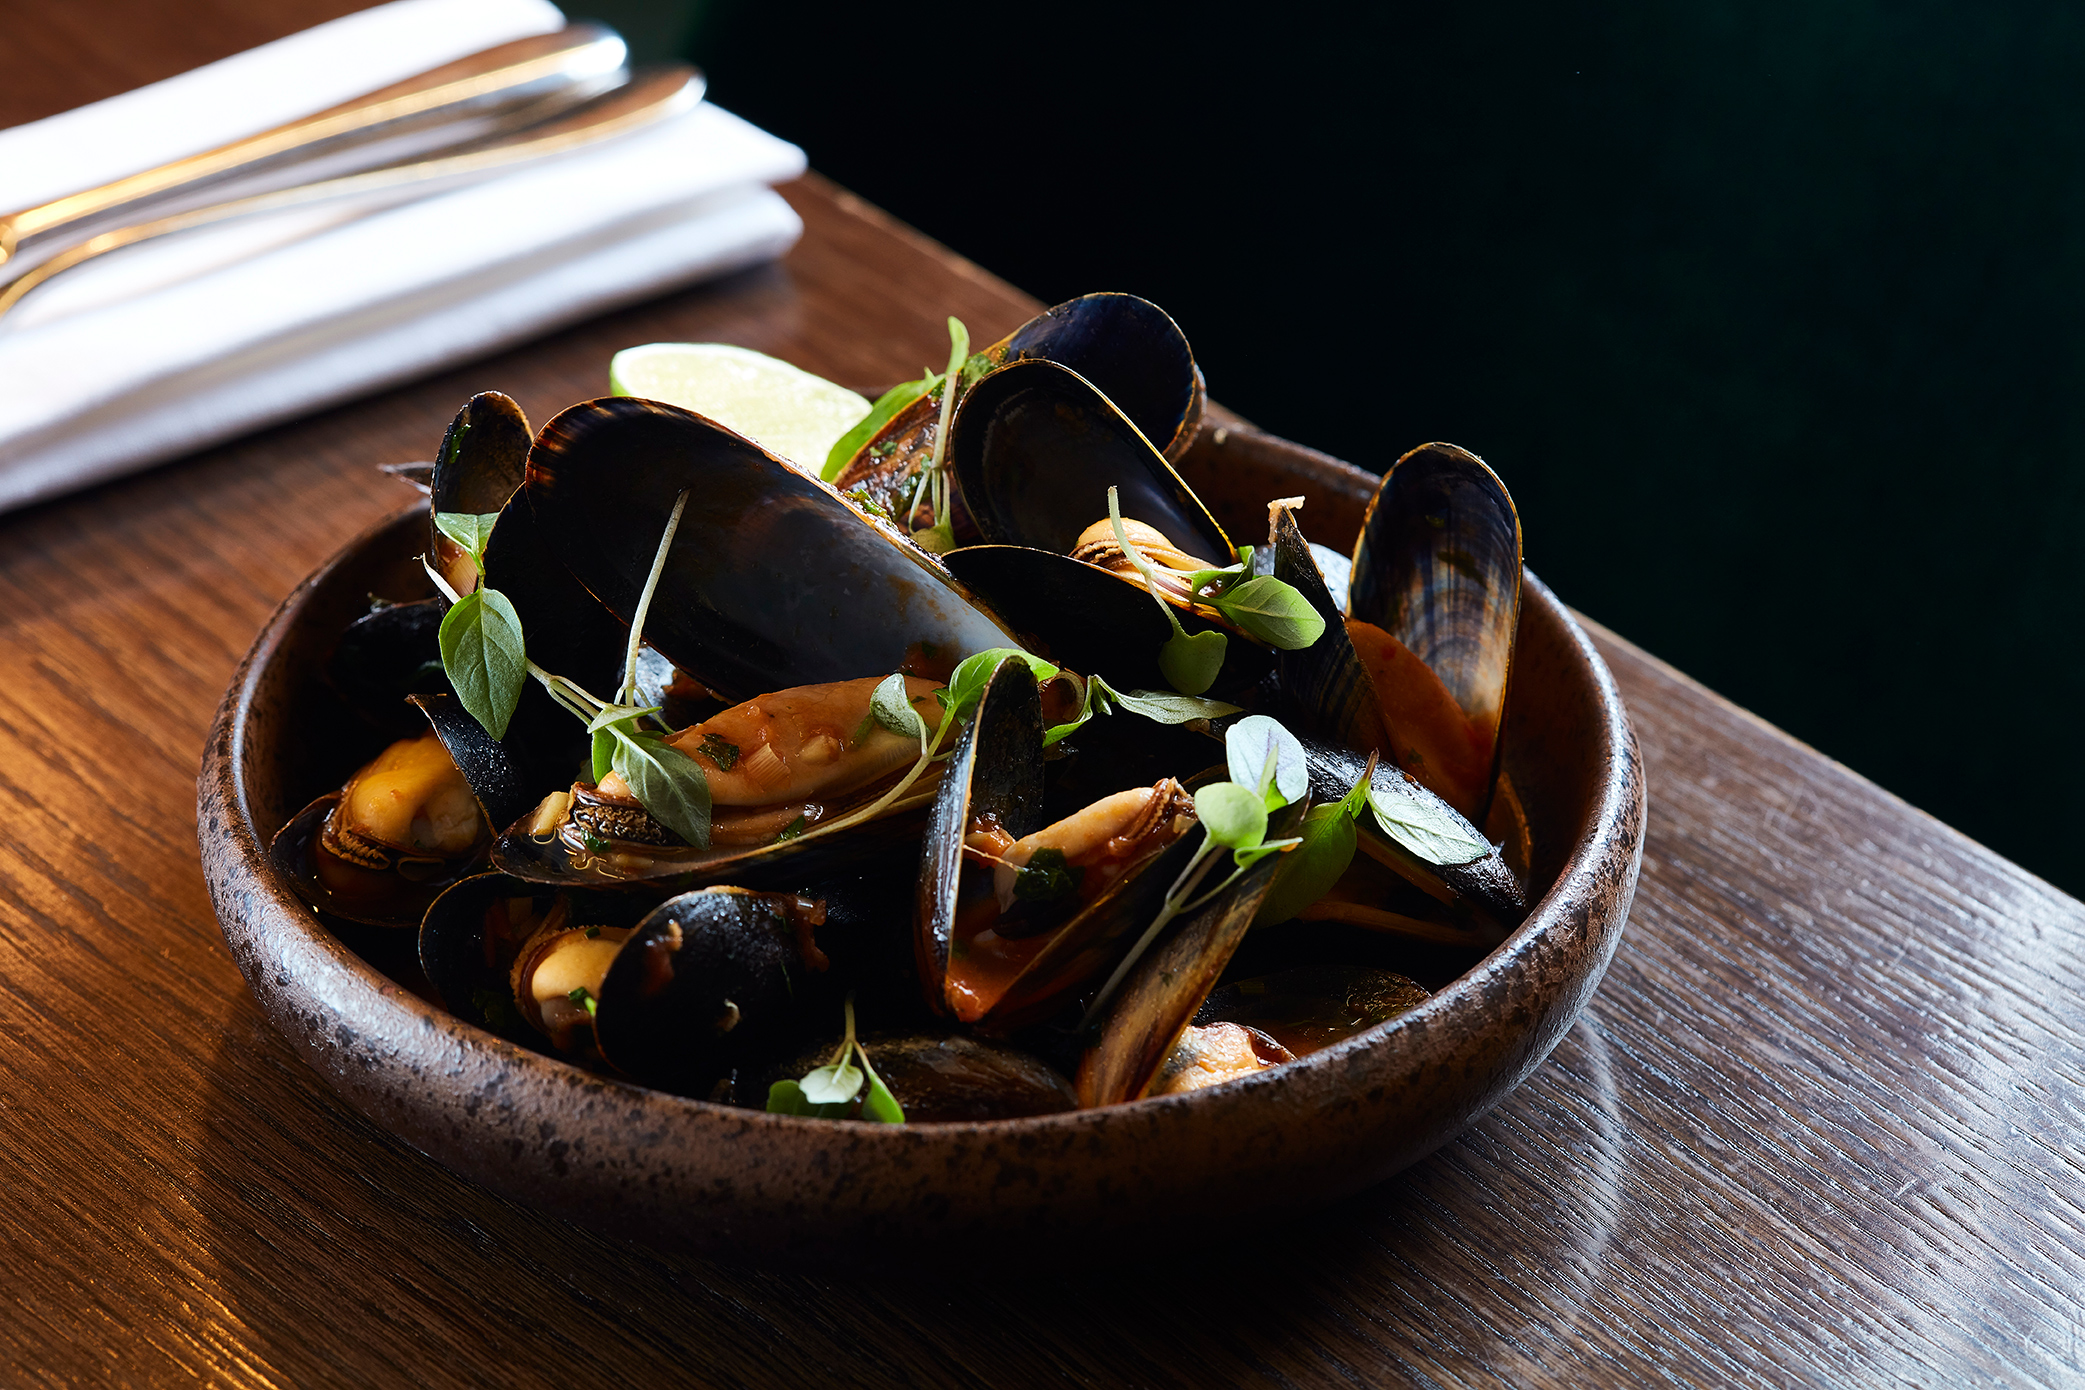 Mussels madness - Every Wednesday enjoy unlimited mussels £10 per person and +£15 bottle of wine to share for 1.5hr